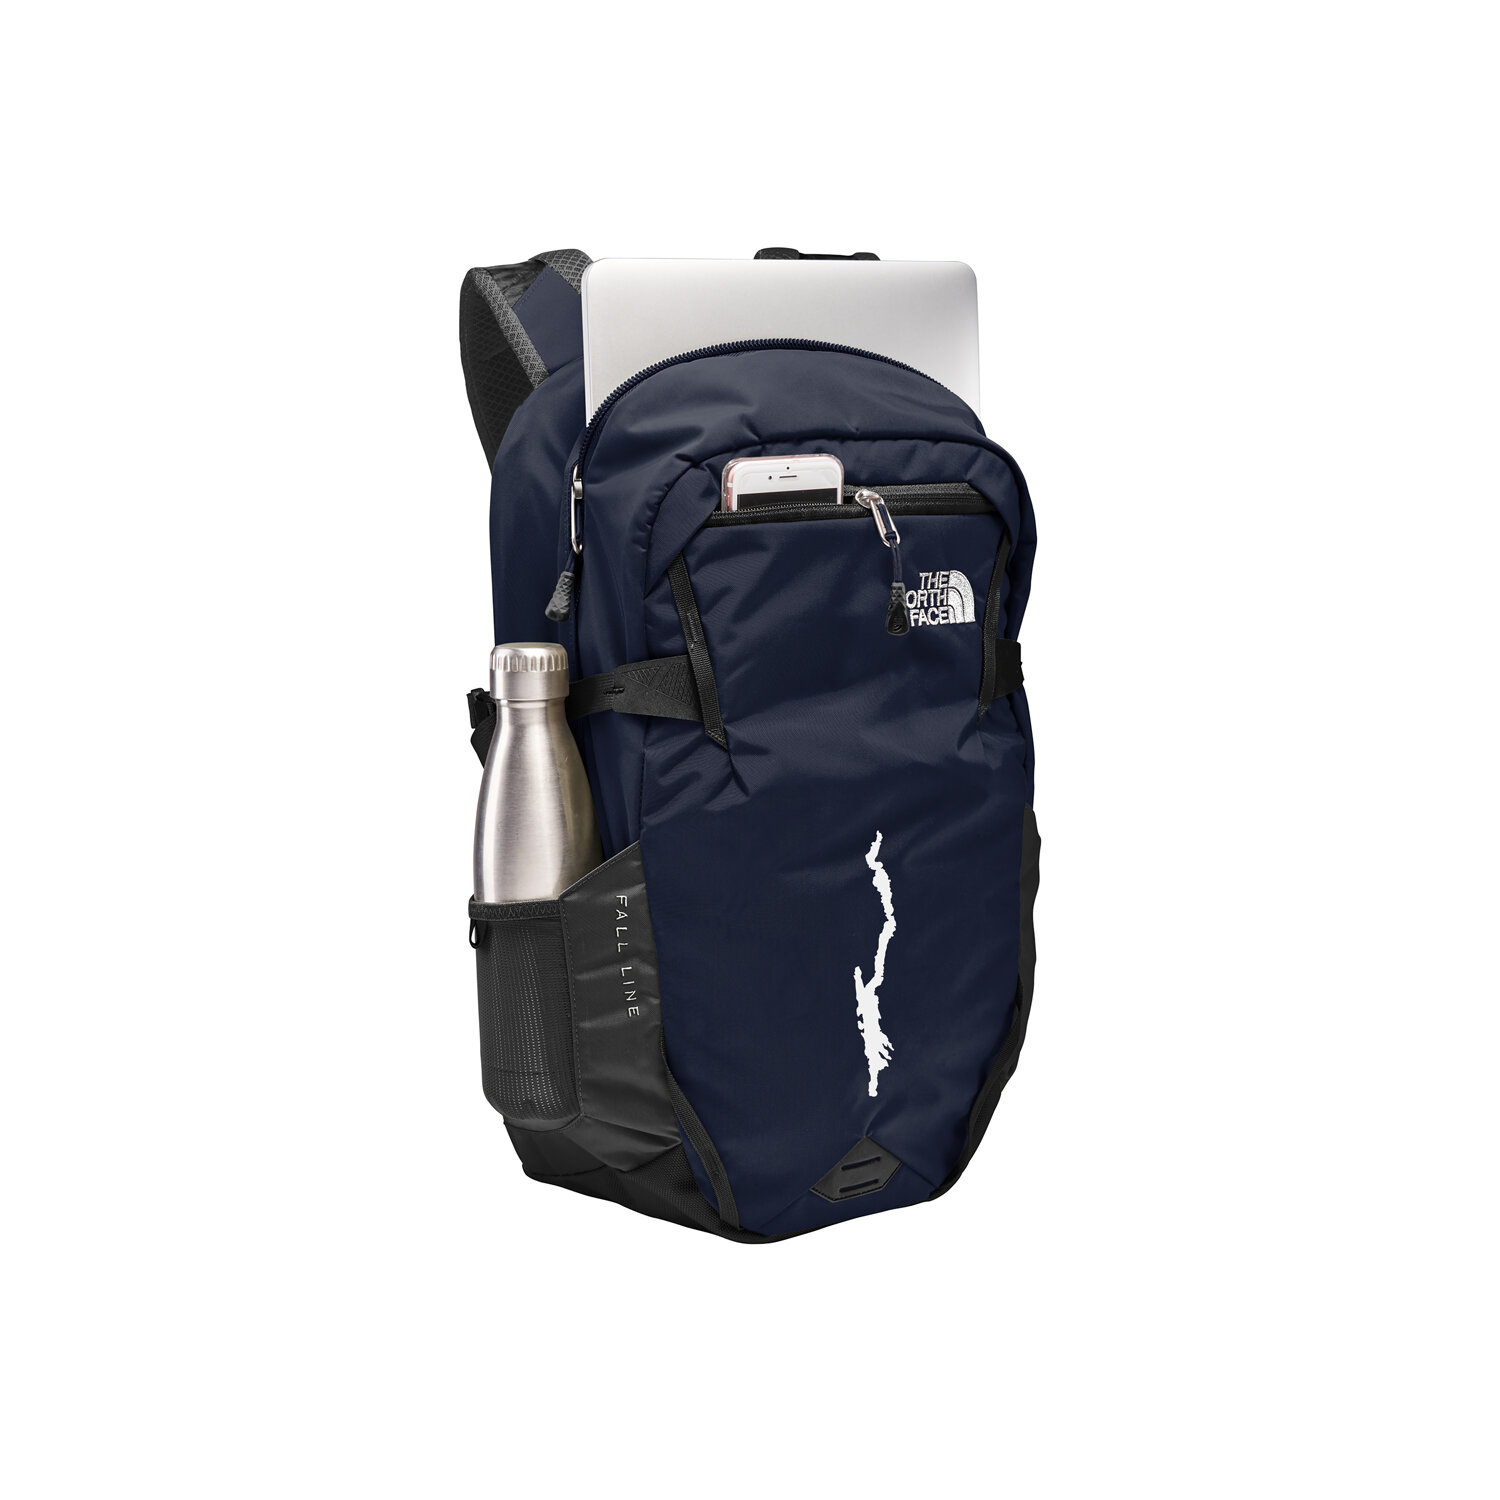 7_Local_Navy_Backpack_Side_Small.jpg